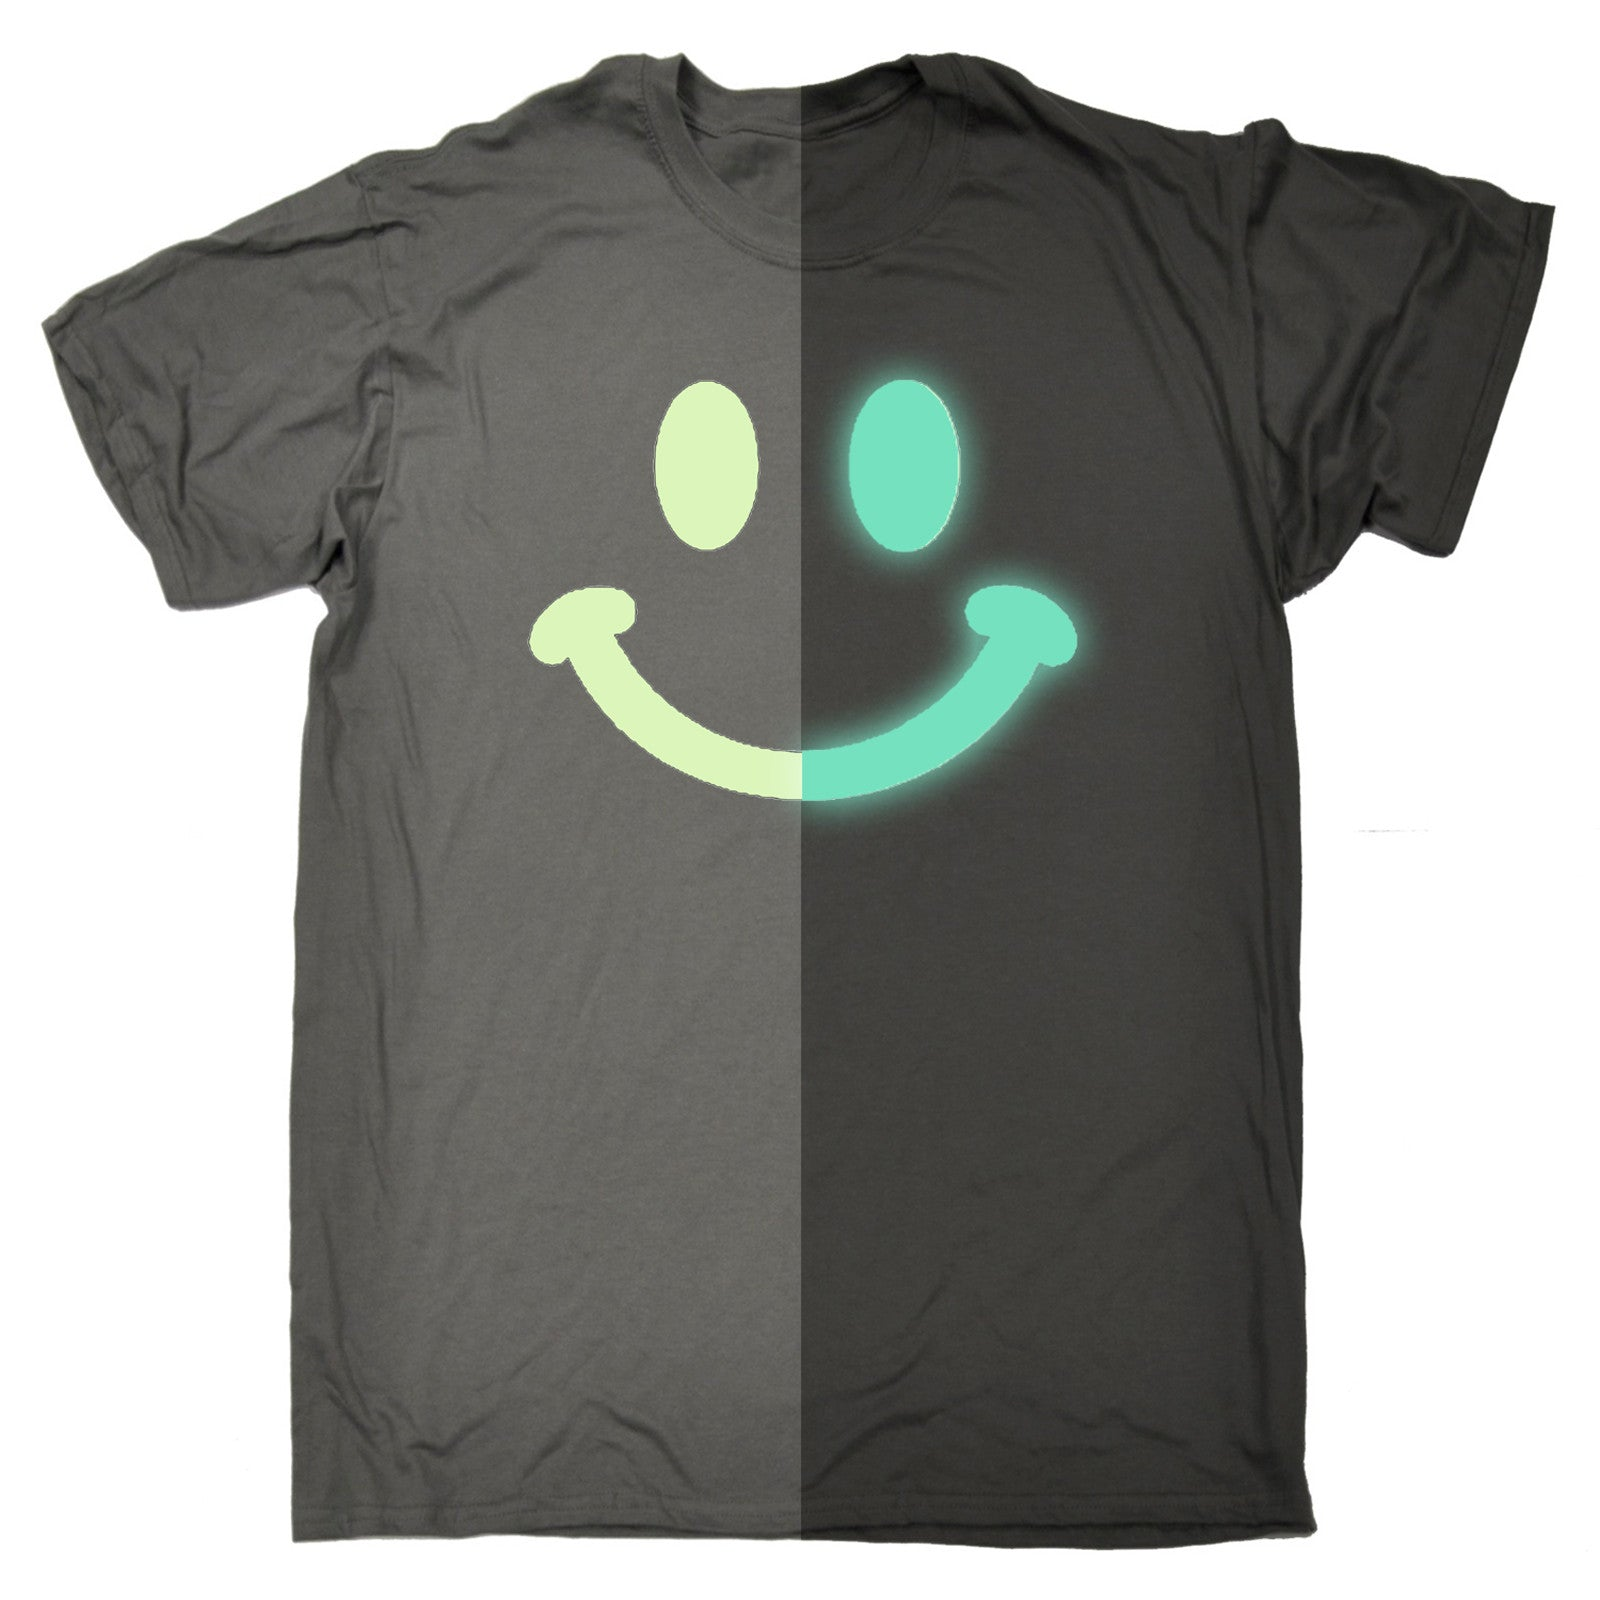 Glow in the dark smiley face t shirt old skool rave acid for Old skool acid house